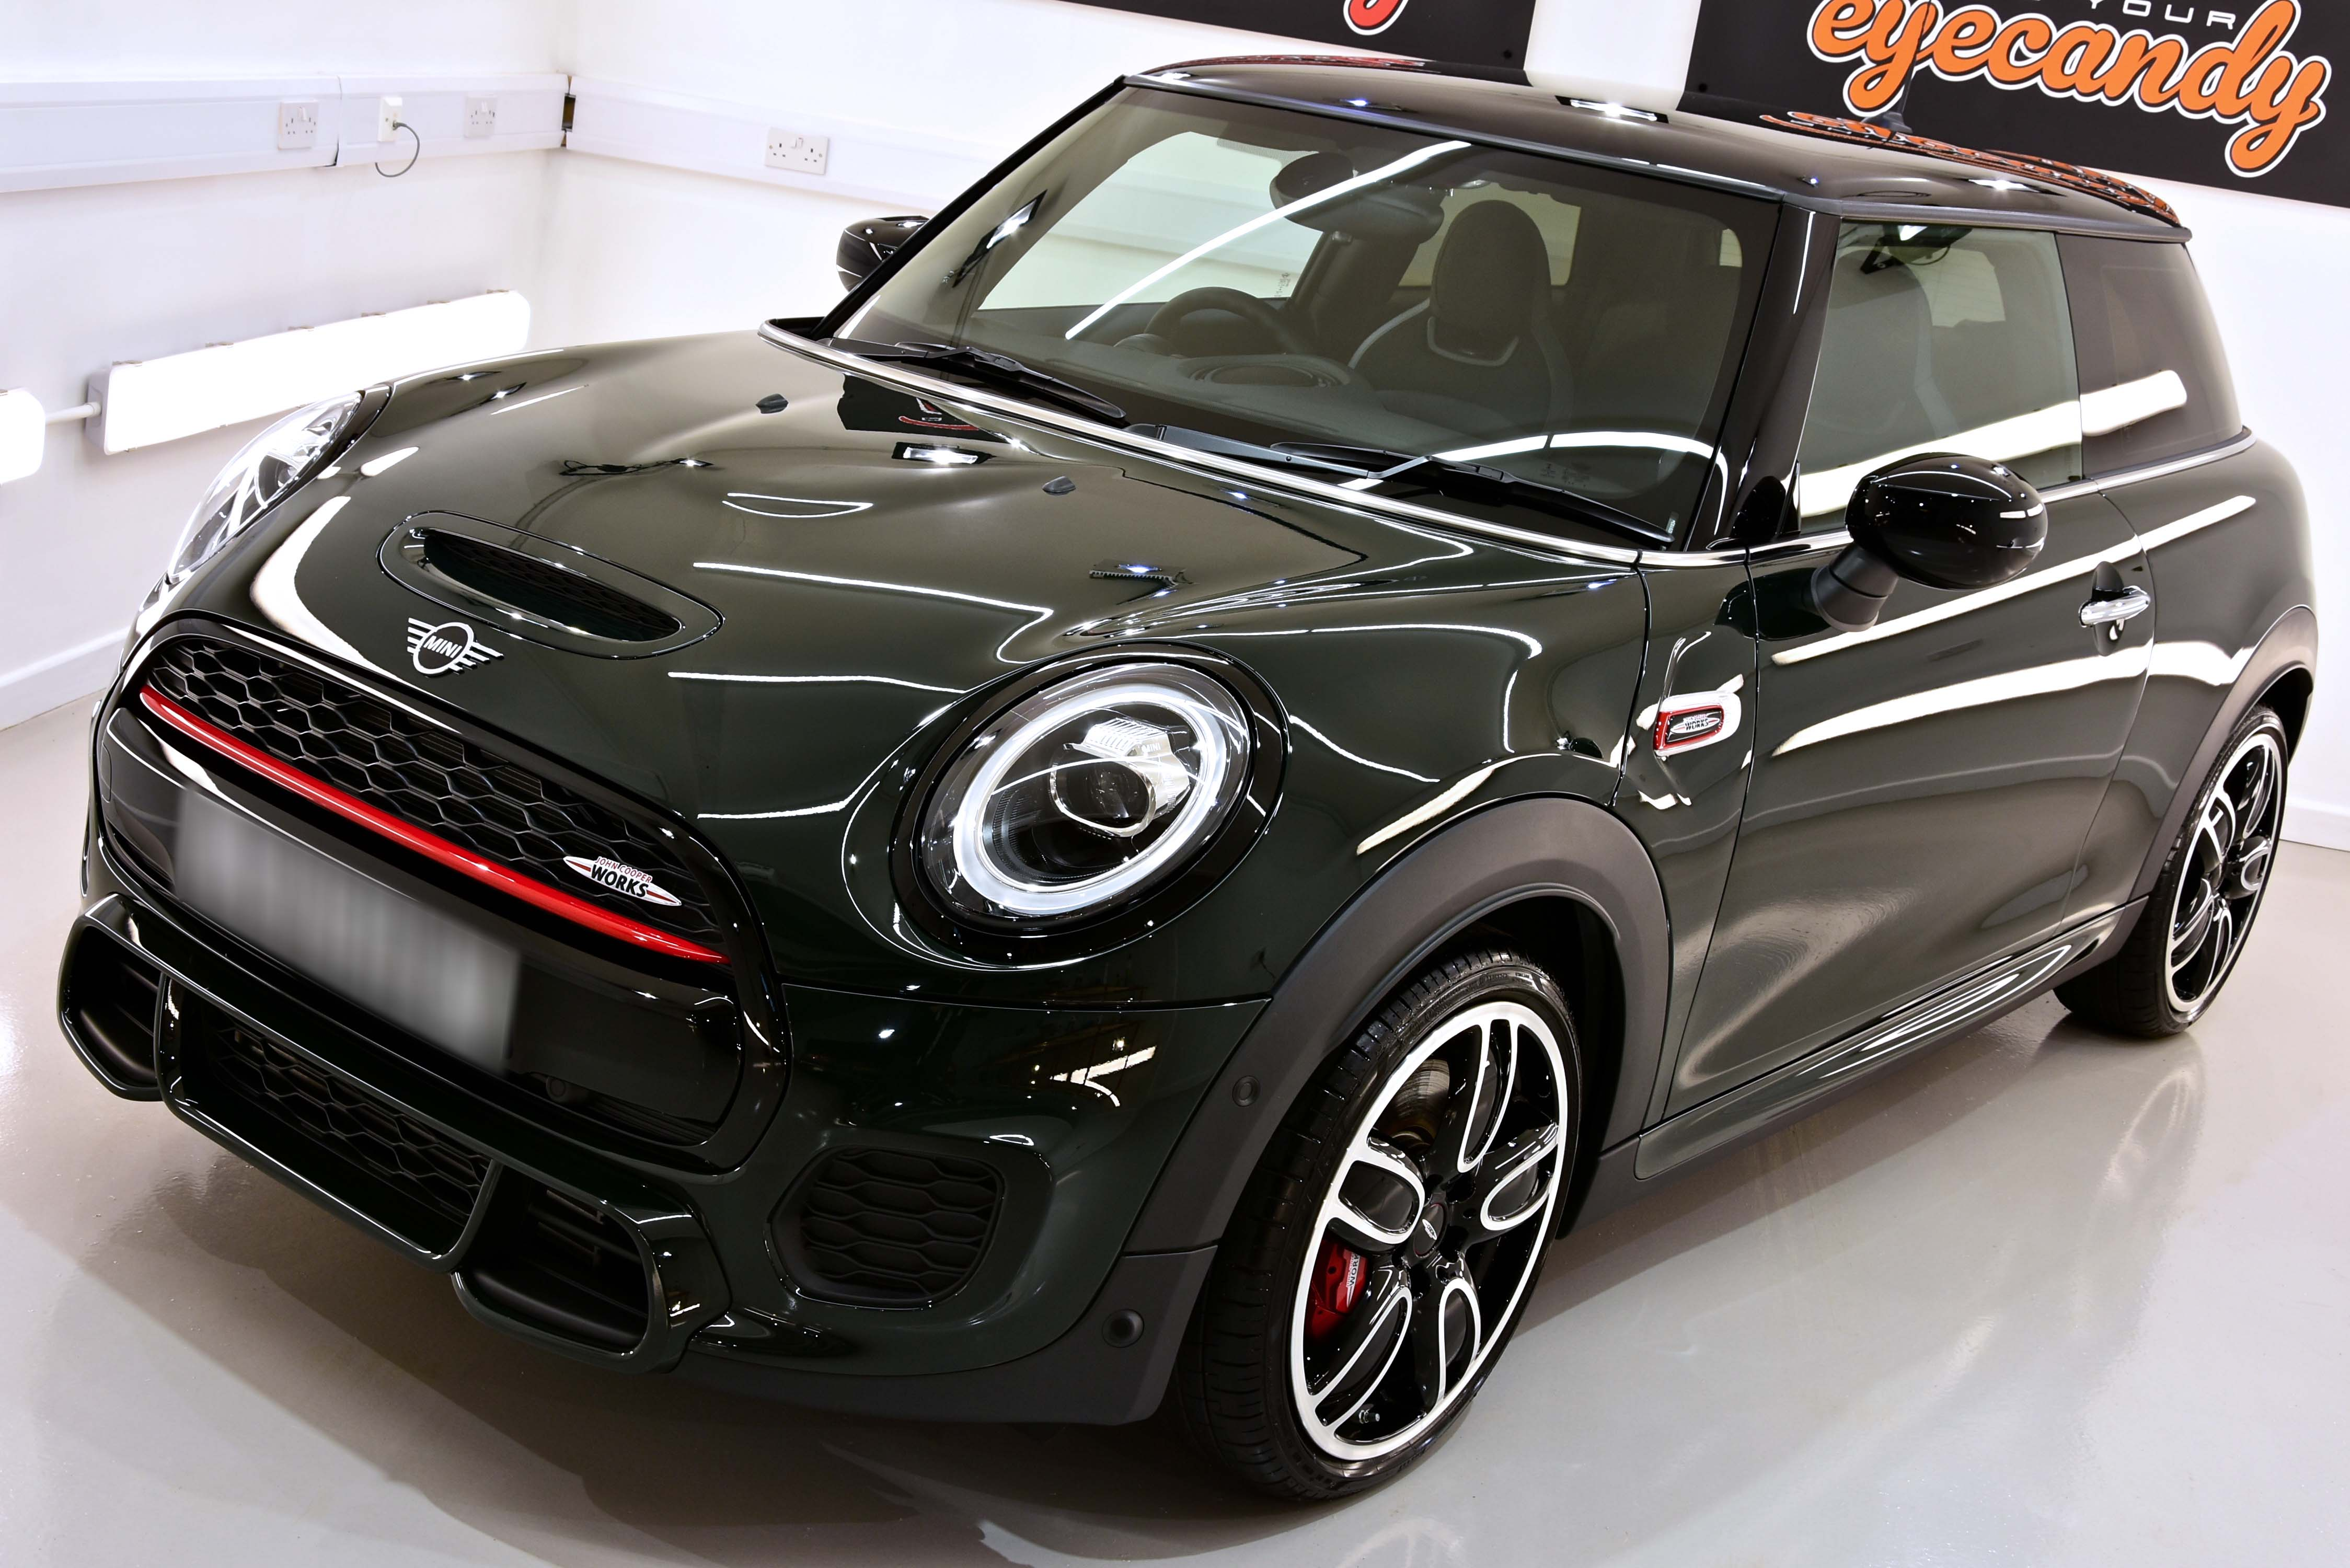 MINI John Cooper Works New Car Enhancement and Protection Detail with Feynlab Heal Plus